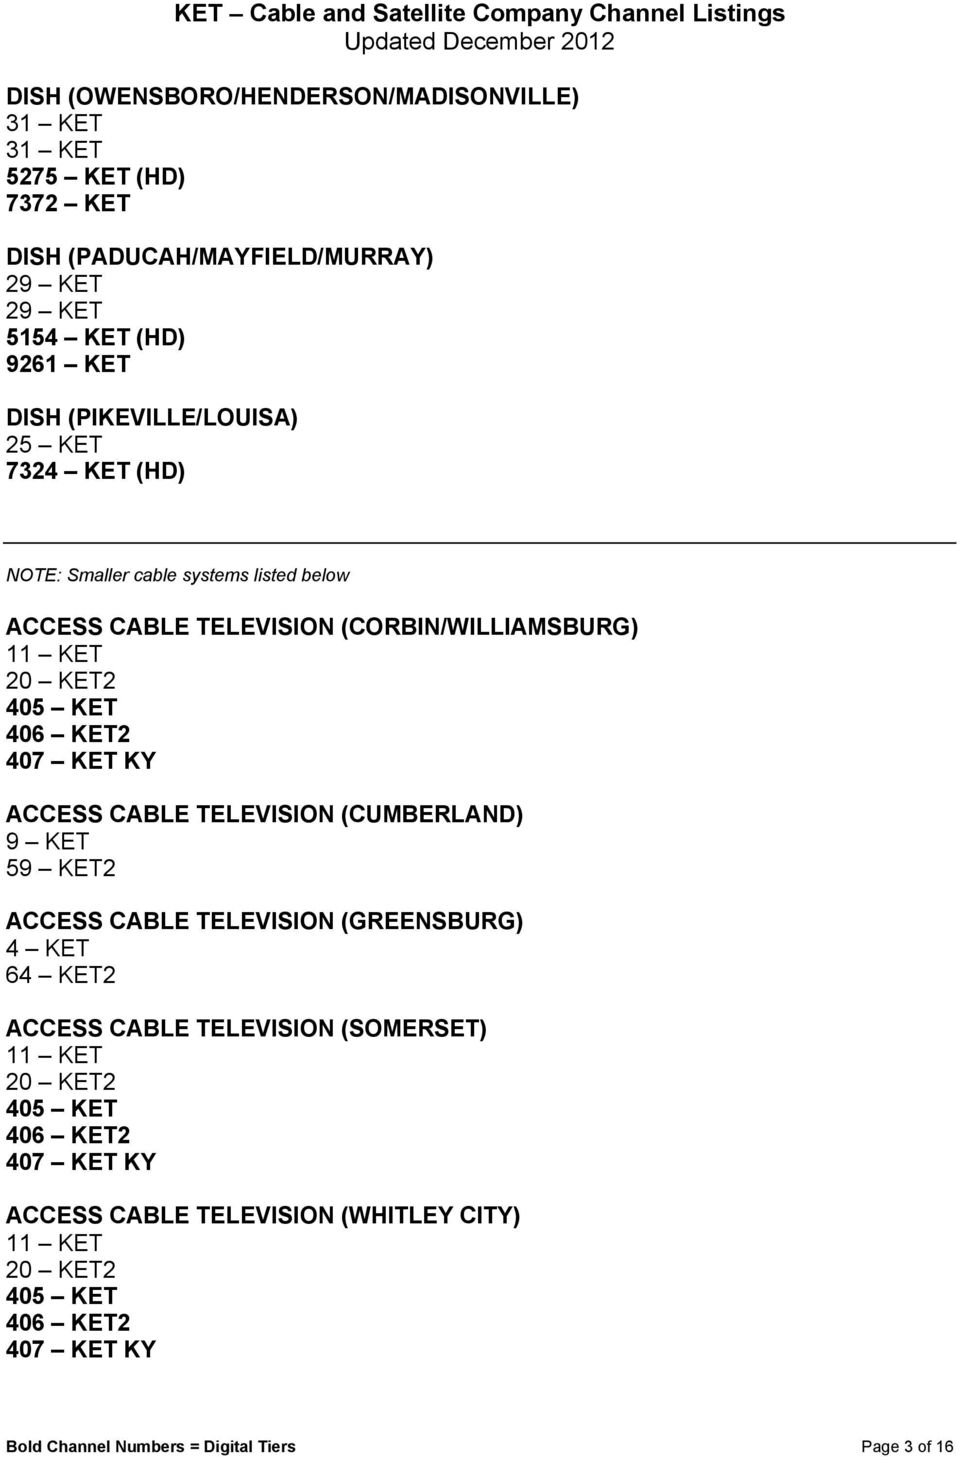 ket cable and satellite company channel listings updated december pdf